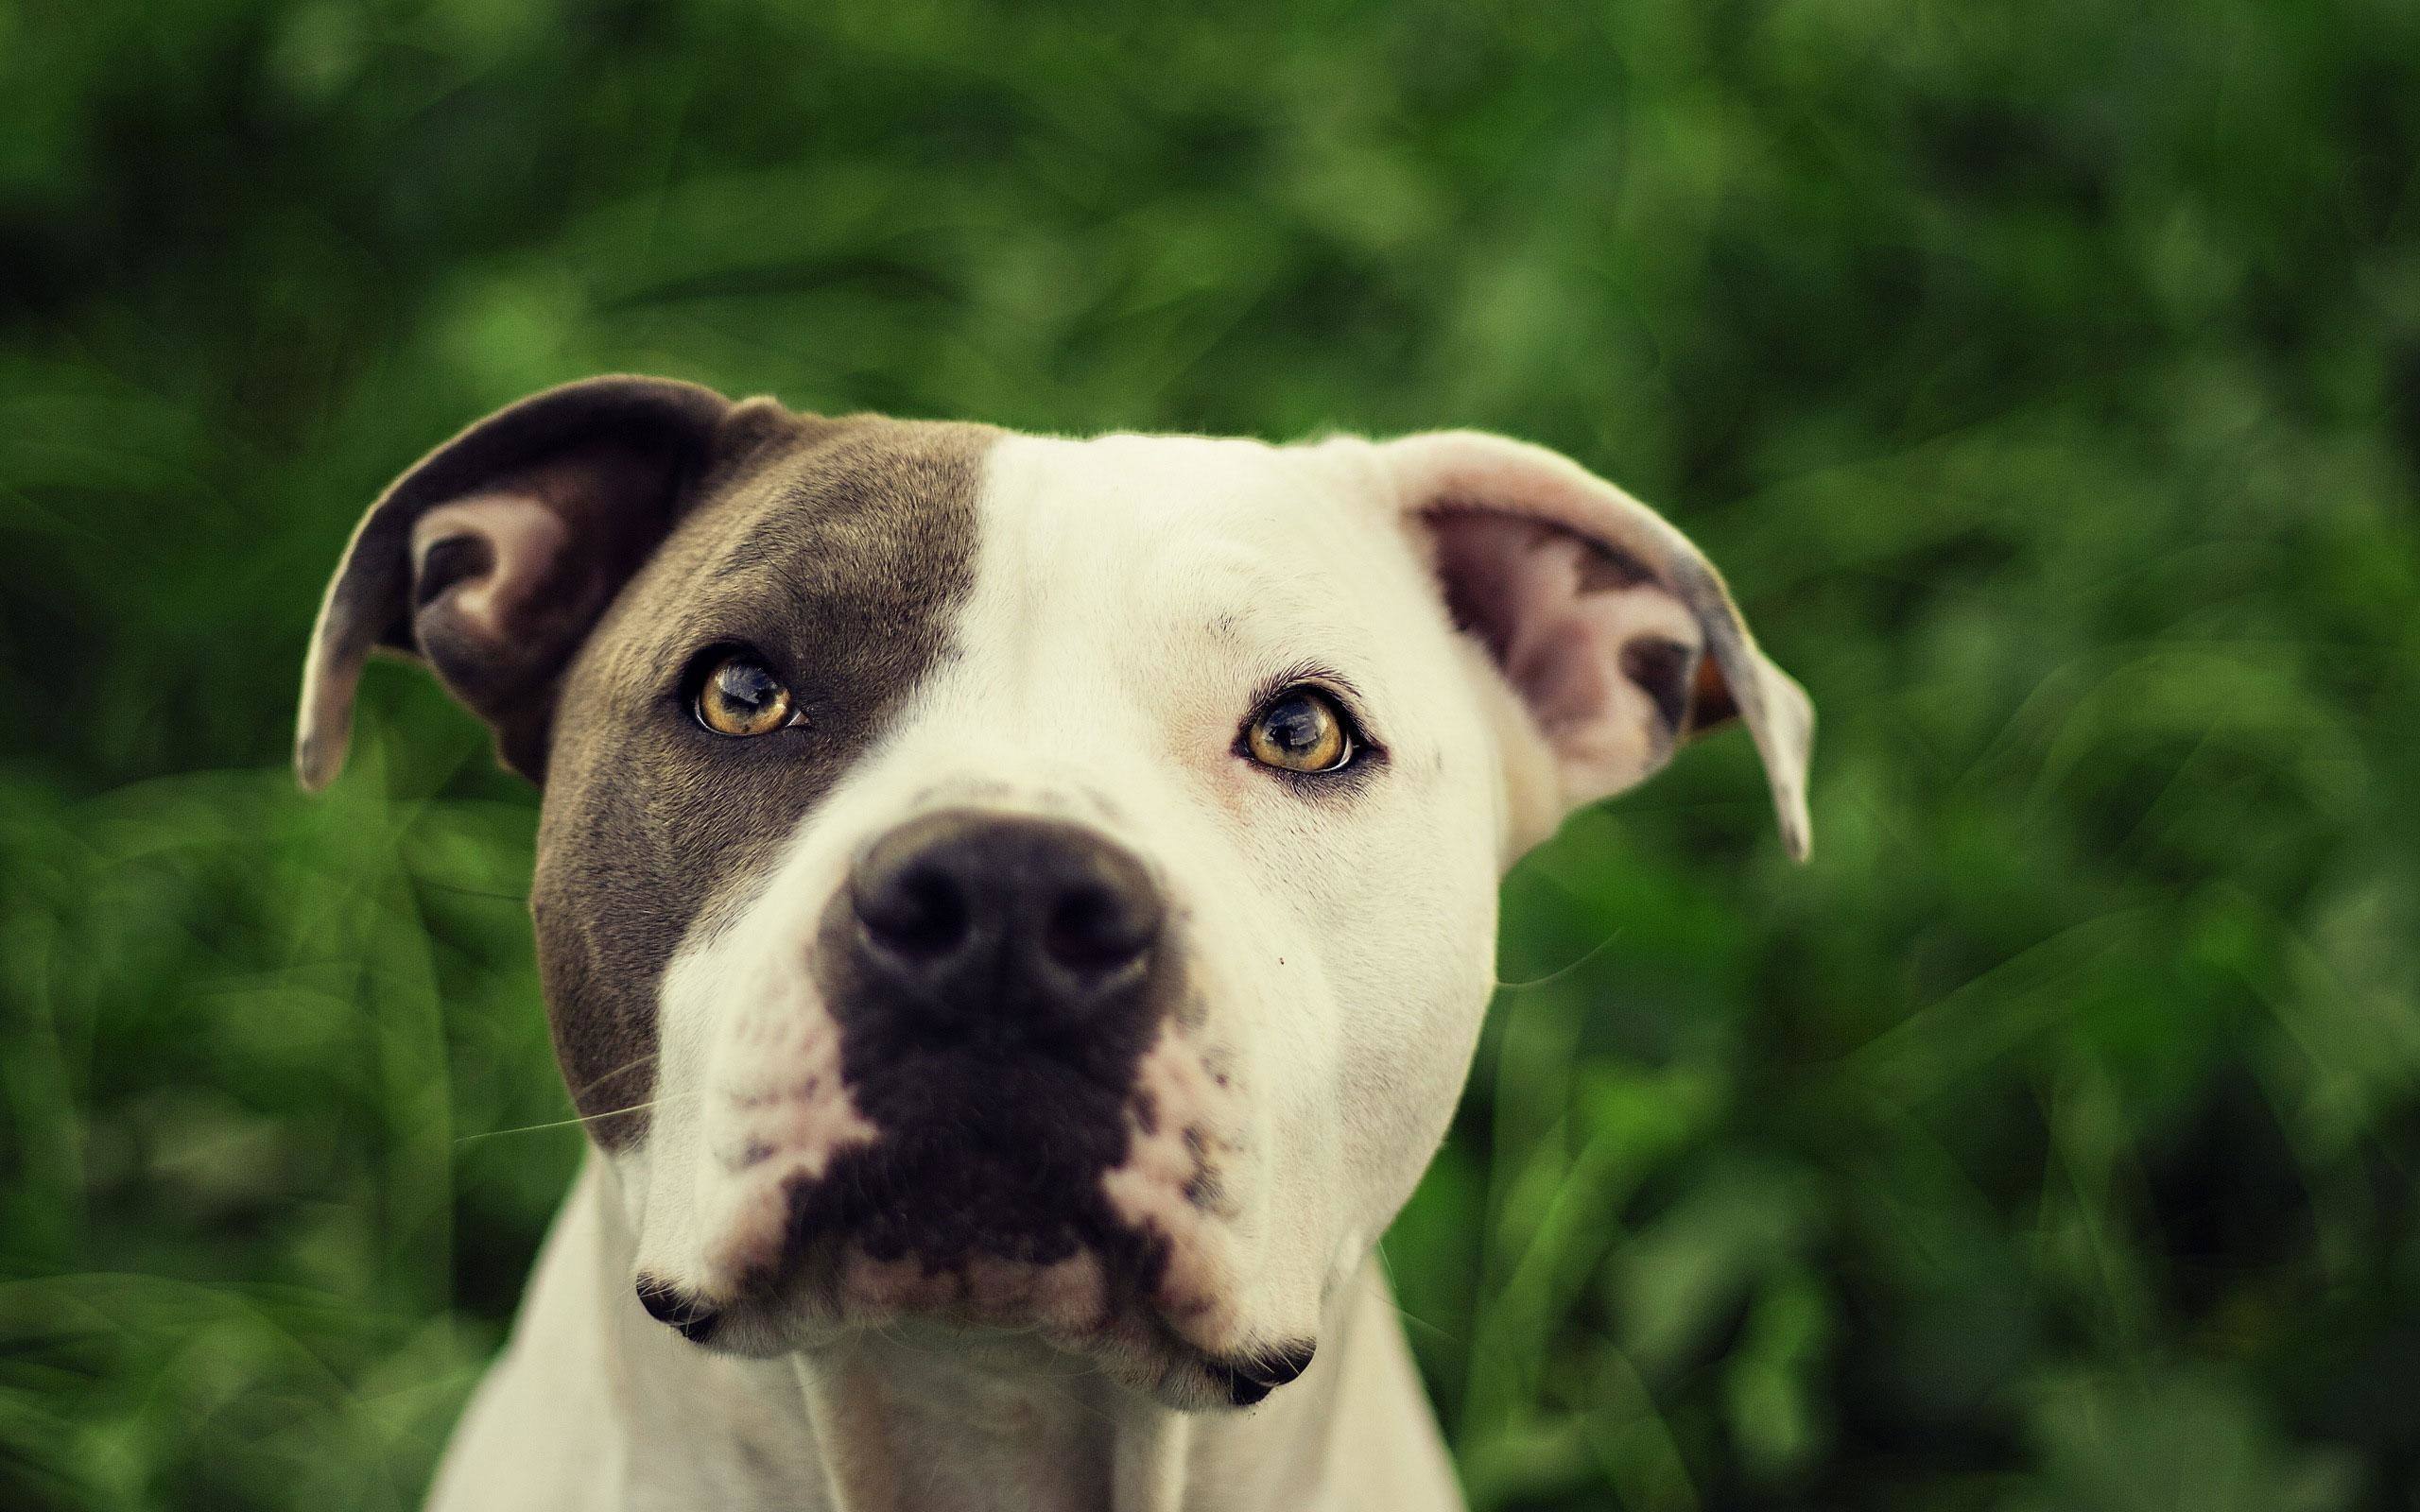 Pit Bull Dog Hd Wallpapers Pit Bull Desktop Images Cool Wallpapers .